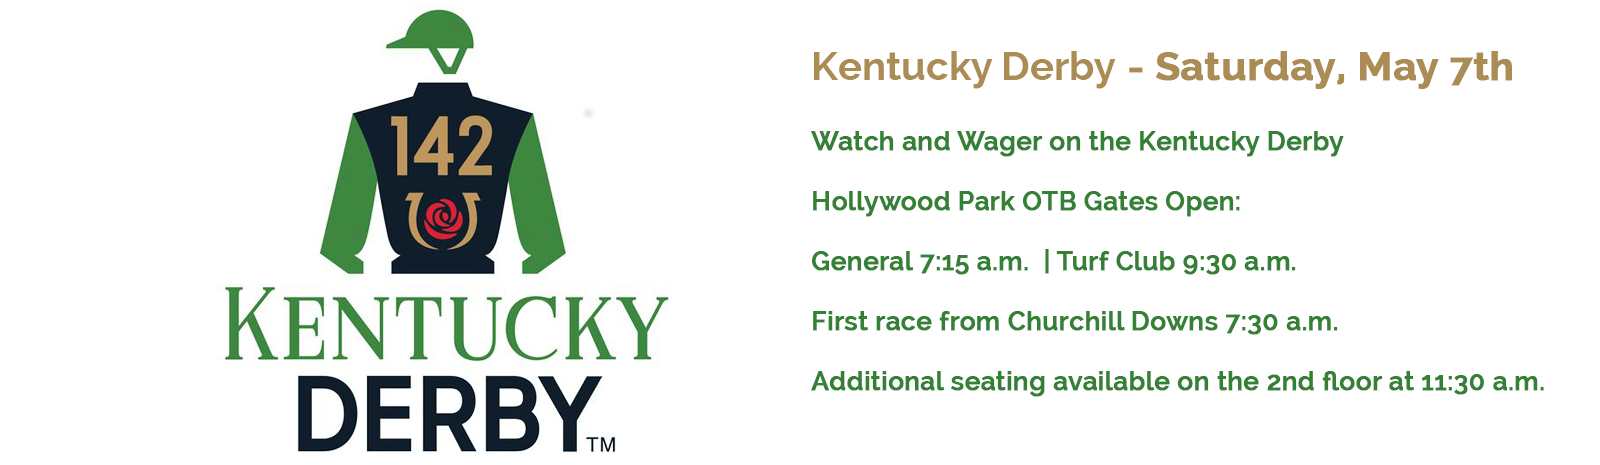 kentucky derby 16